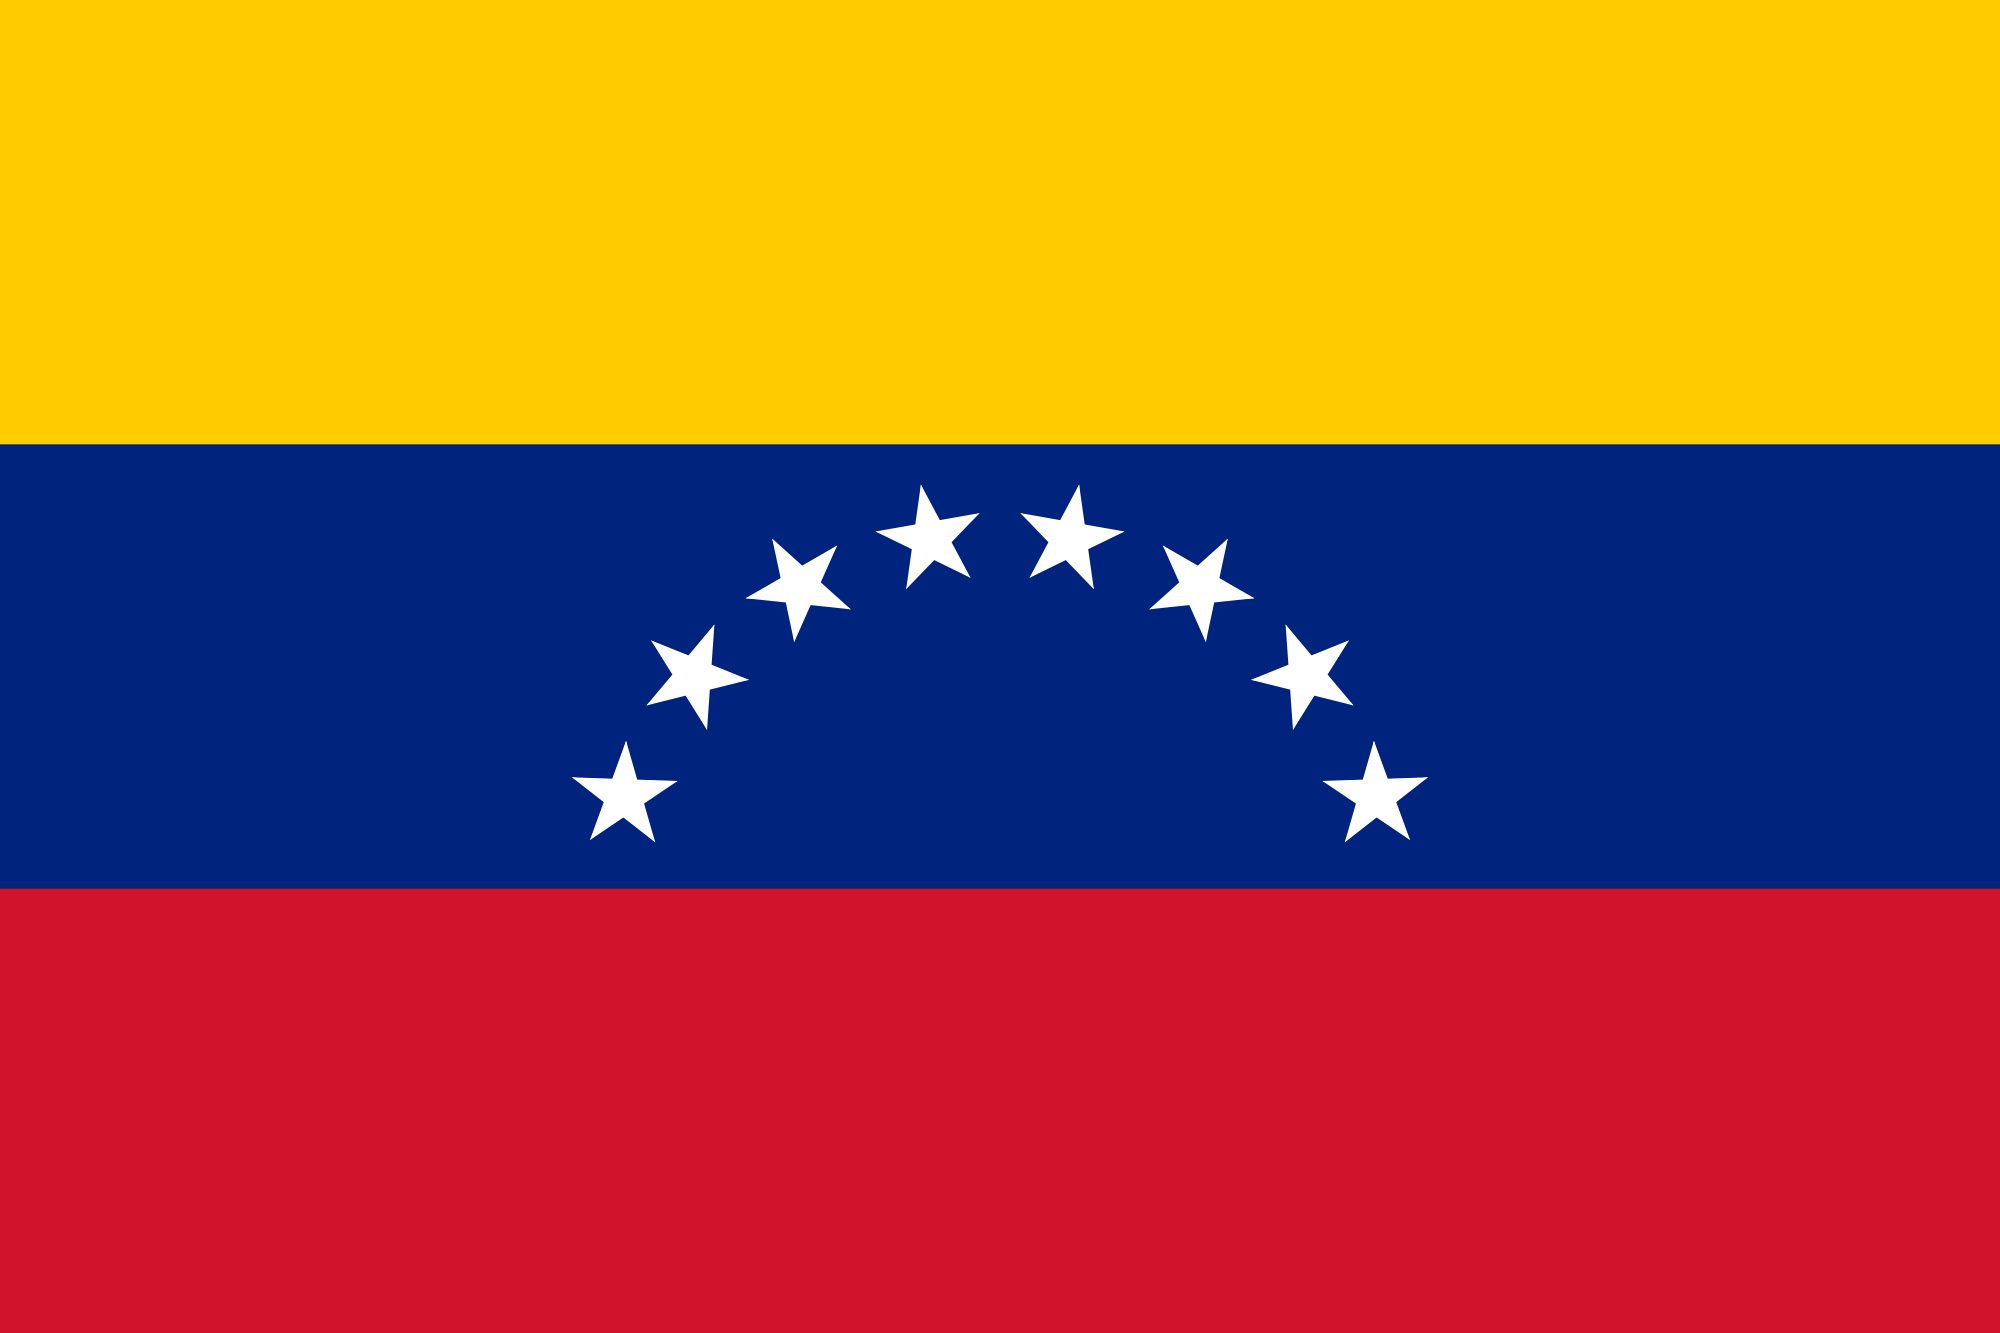 17 best ideas about Flag Of Venezuela on Pinterest | Venezuela